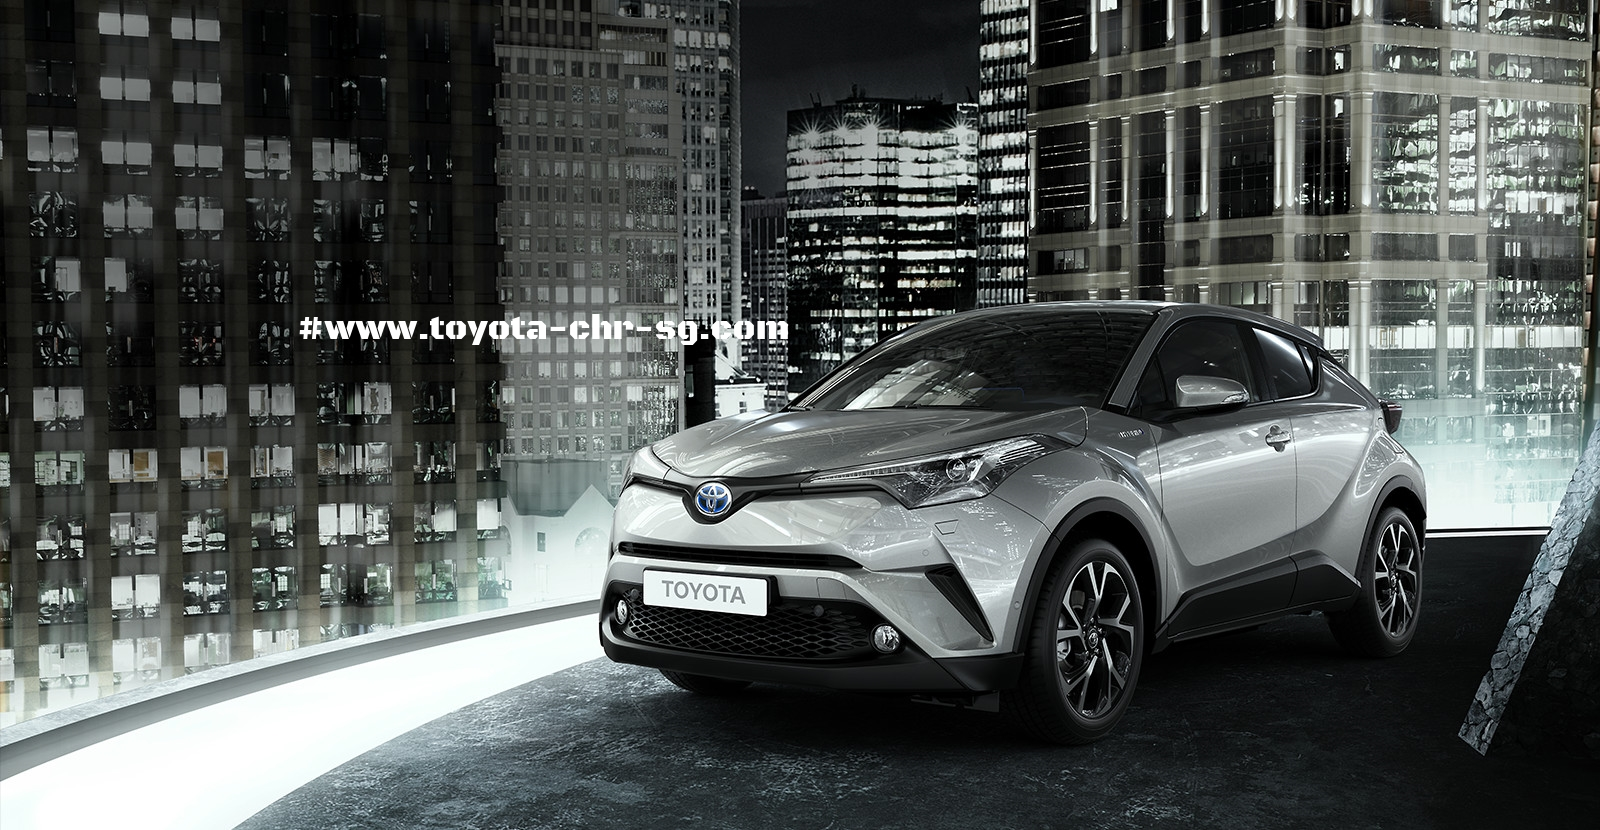 Toyota C-HR Front View